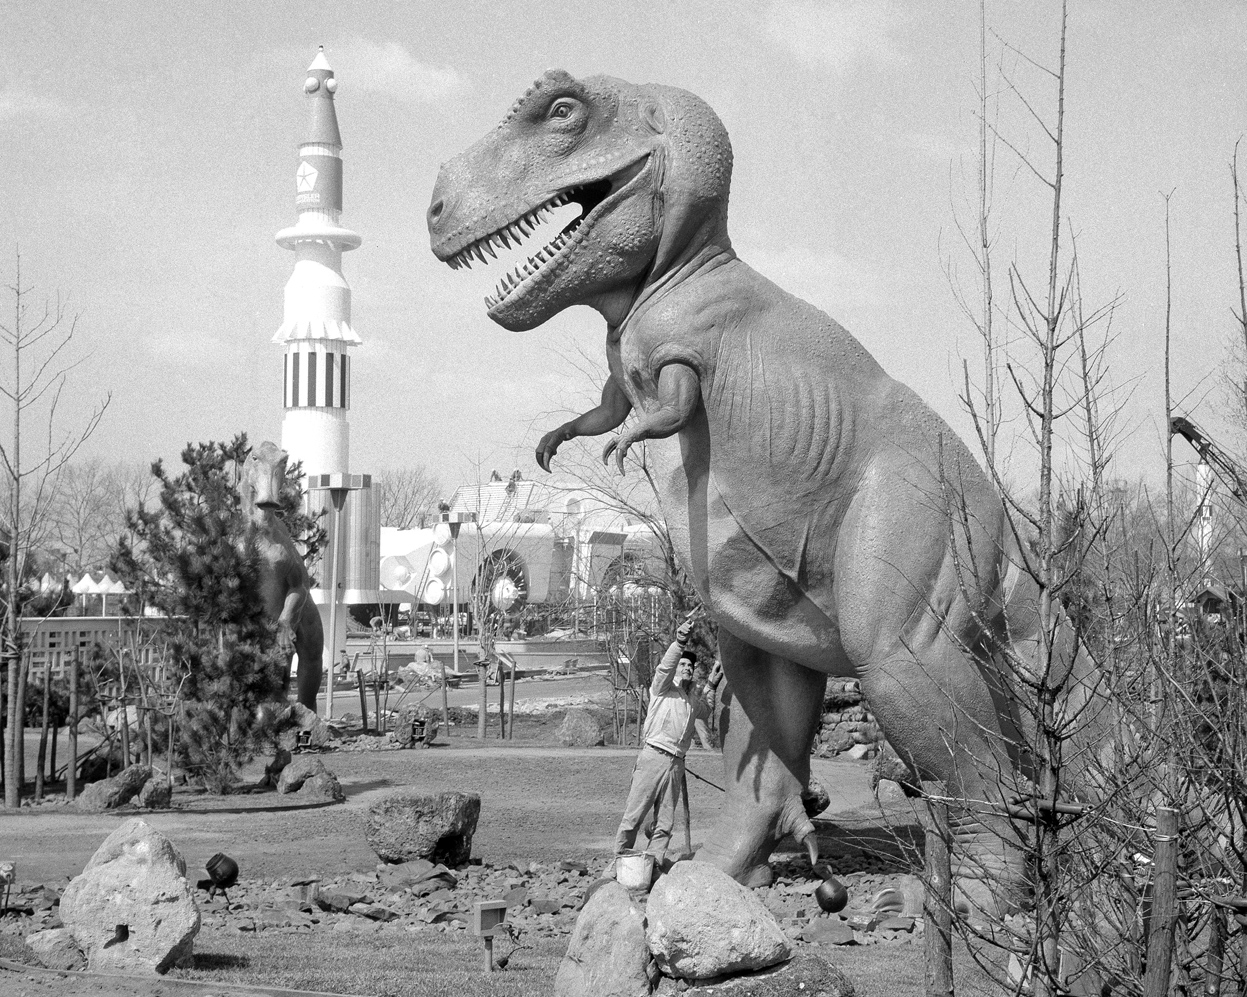 Dinoland under construction prior to the opening of the 1964-1965 New York World's Fair.